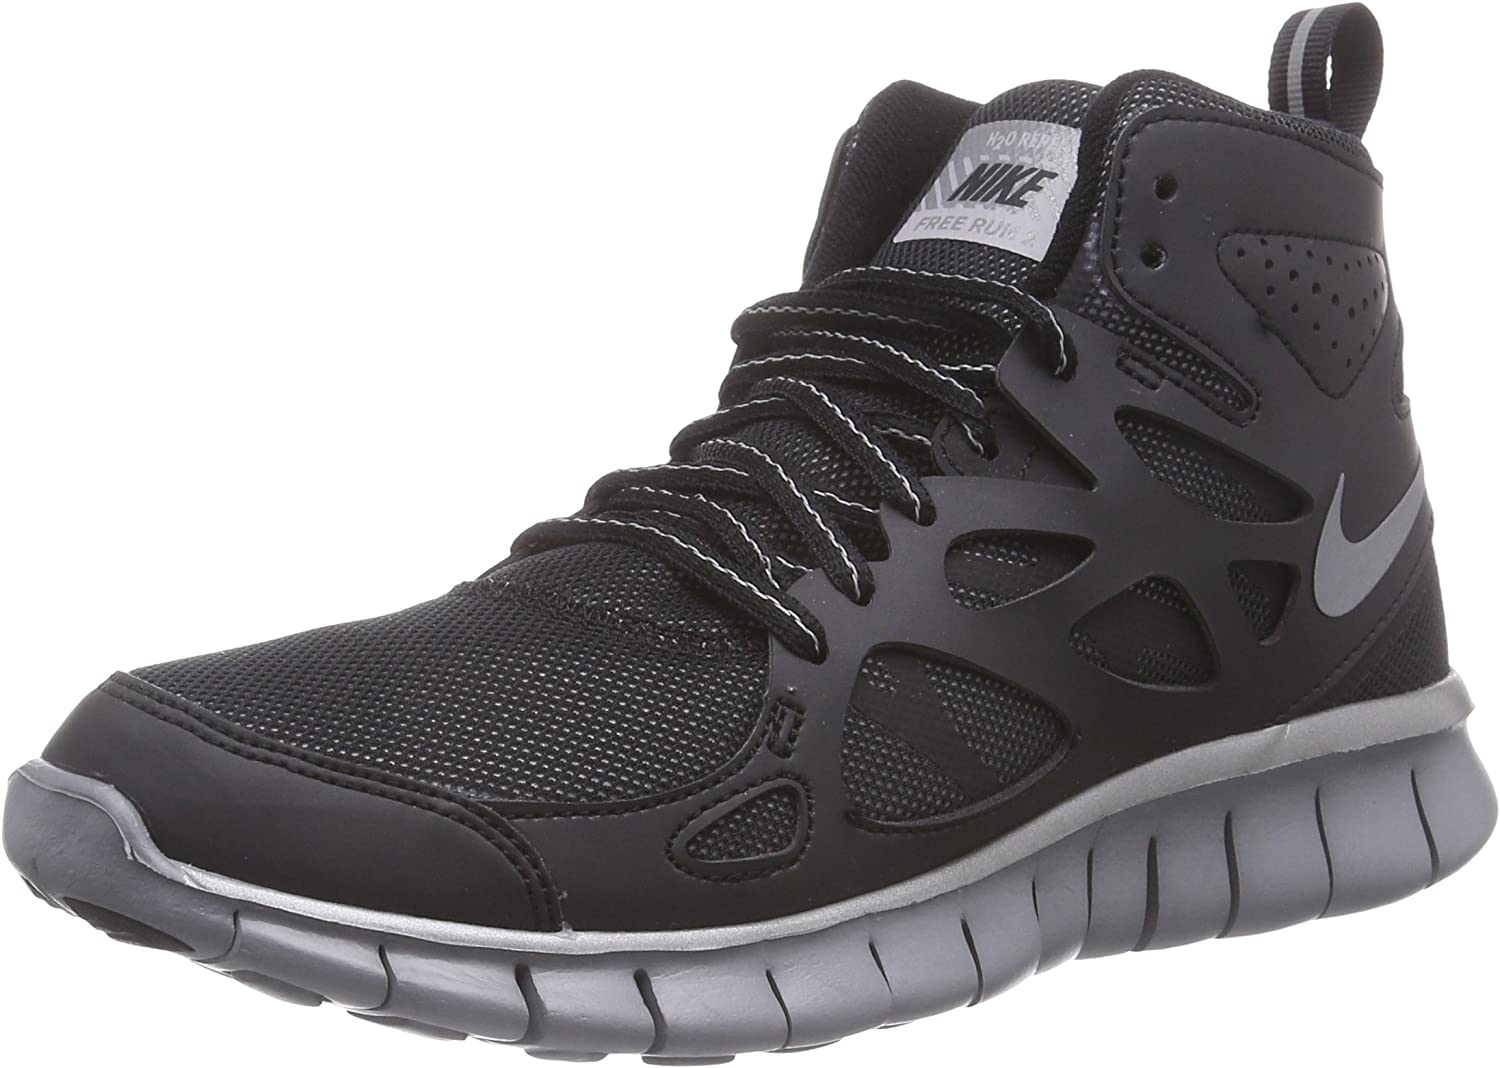 NIKE Free Run 2 Sneakerboot Flash GS hi top Trainers 685746 Sneakers Shoes